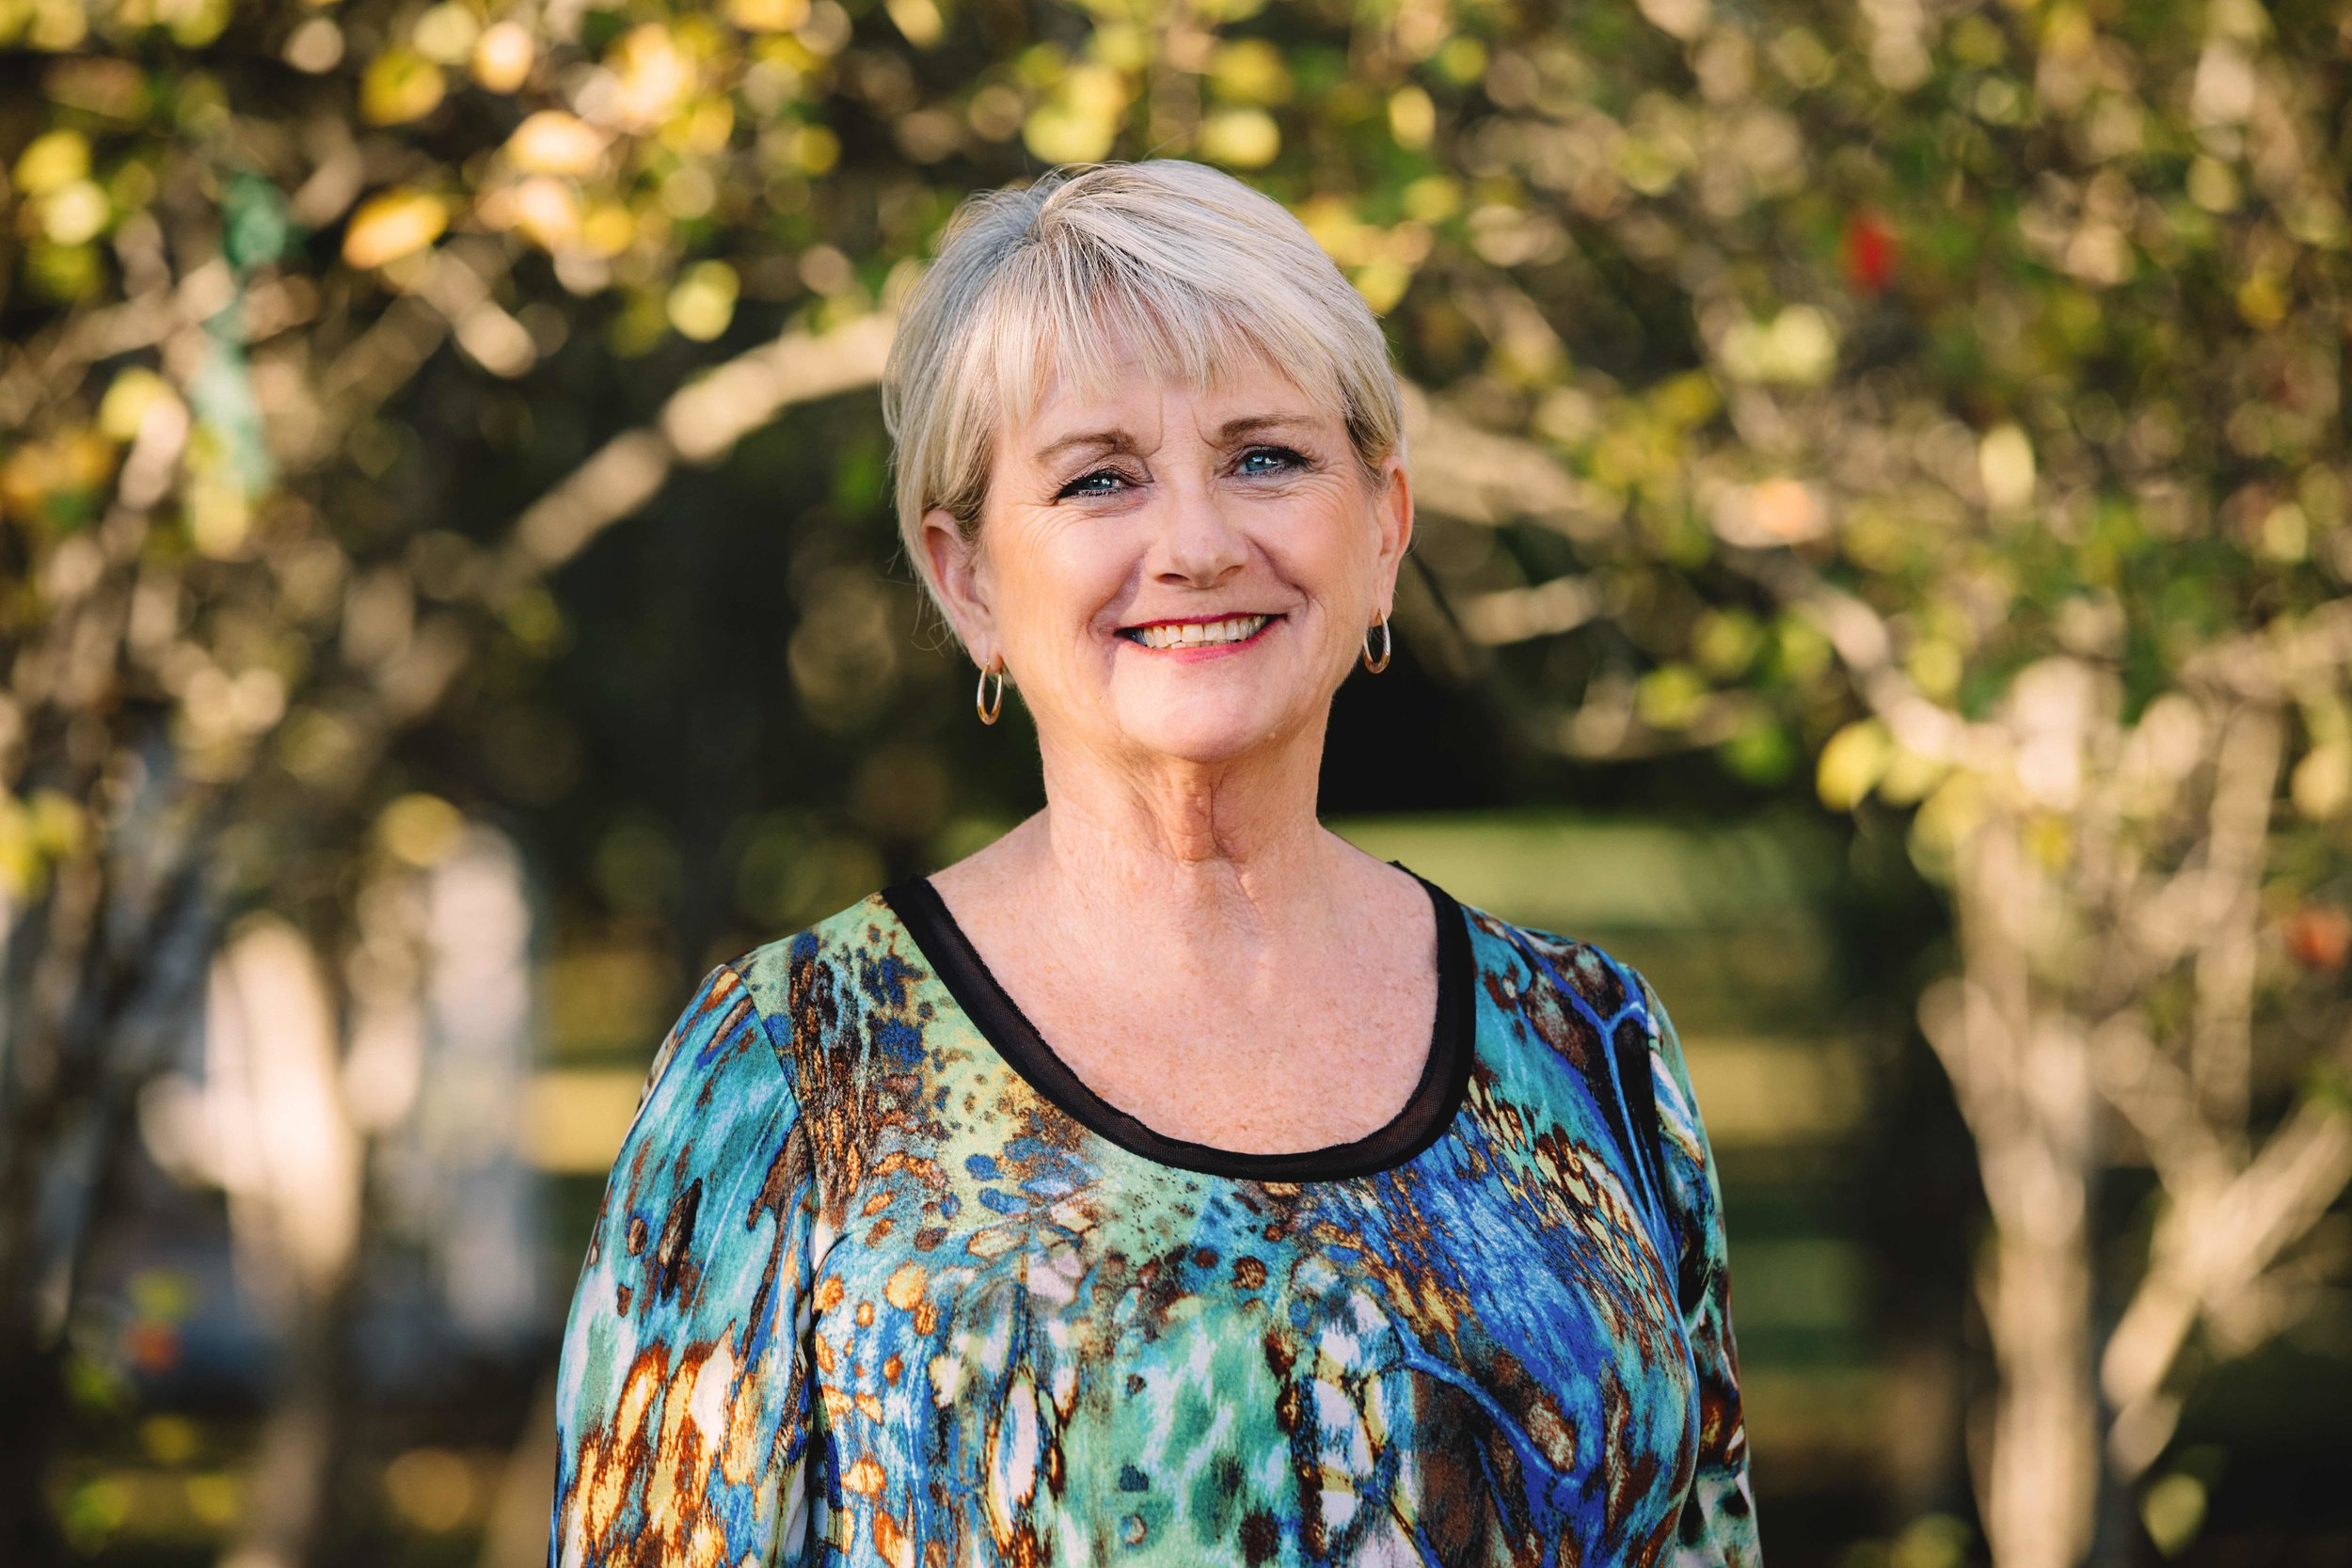 Debbie White - White House Company, LLC is a full service real estate brokerage established in 1992. Debbie White, broker, has been in the real estate business since 1985 and holds the professional designations of CRB, CRS, E-Pro, GRI. Call us for all your real estate needs!